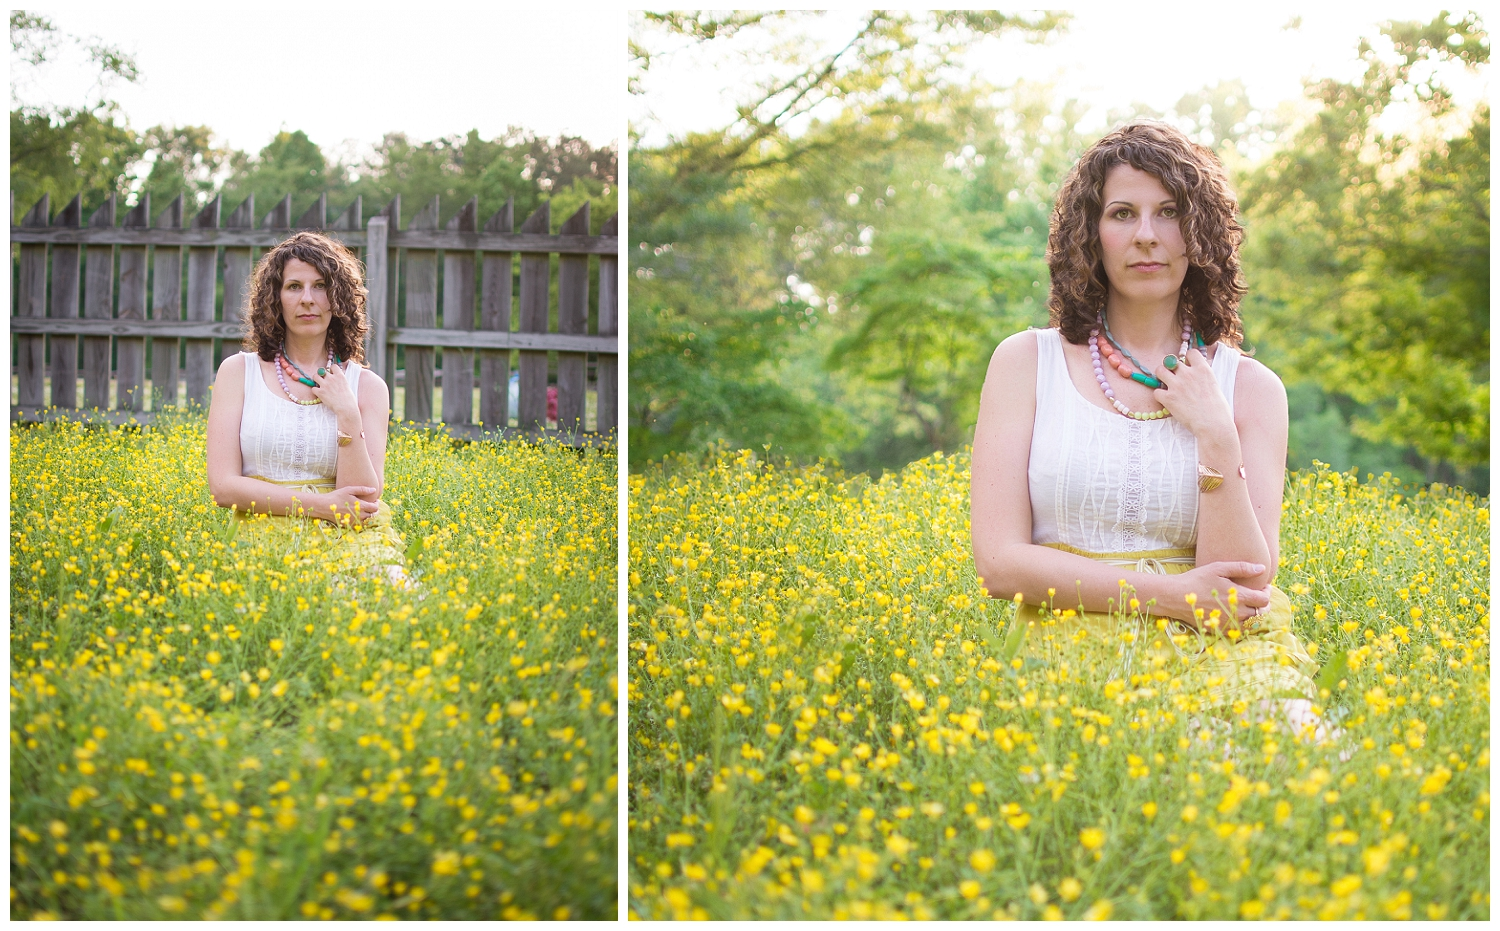 Thought I'd share a little before and after! Obviously I removed the fence. The light was only good in that direction and the fence just killed the shot!! You always have to go where the light is! While I was in Photoshop I thought I'd add a little makeup too :) I don't normally do that because it would take FOREVER, but I thought I'd have a little fun!